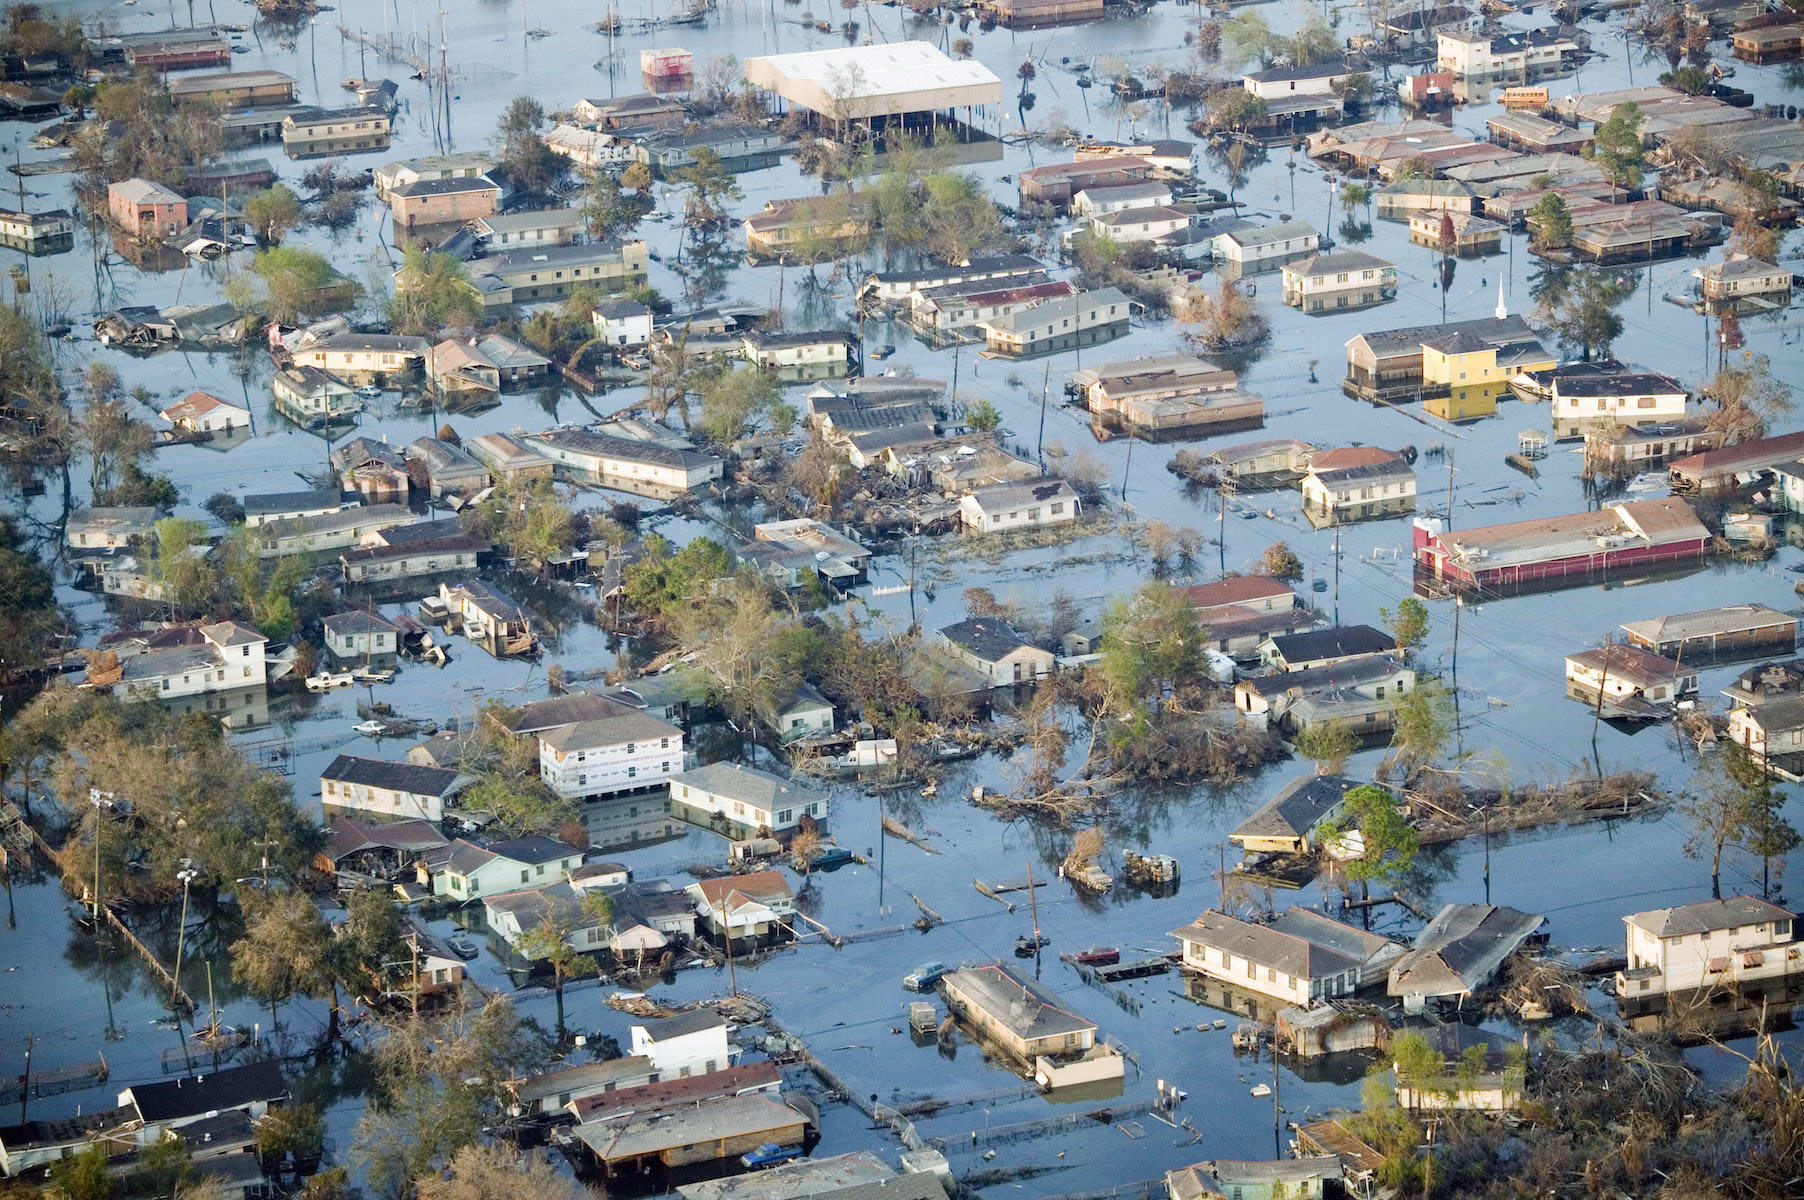 Hurricane Katrina Aftermath - Aerials